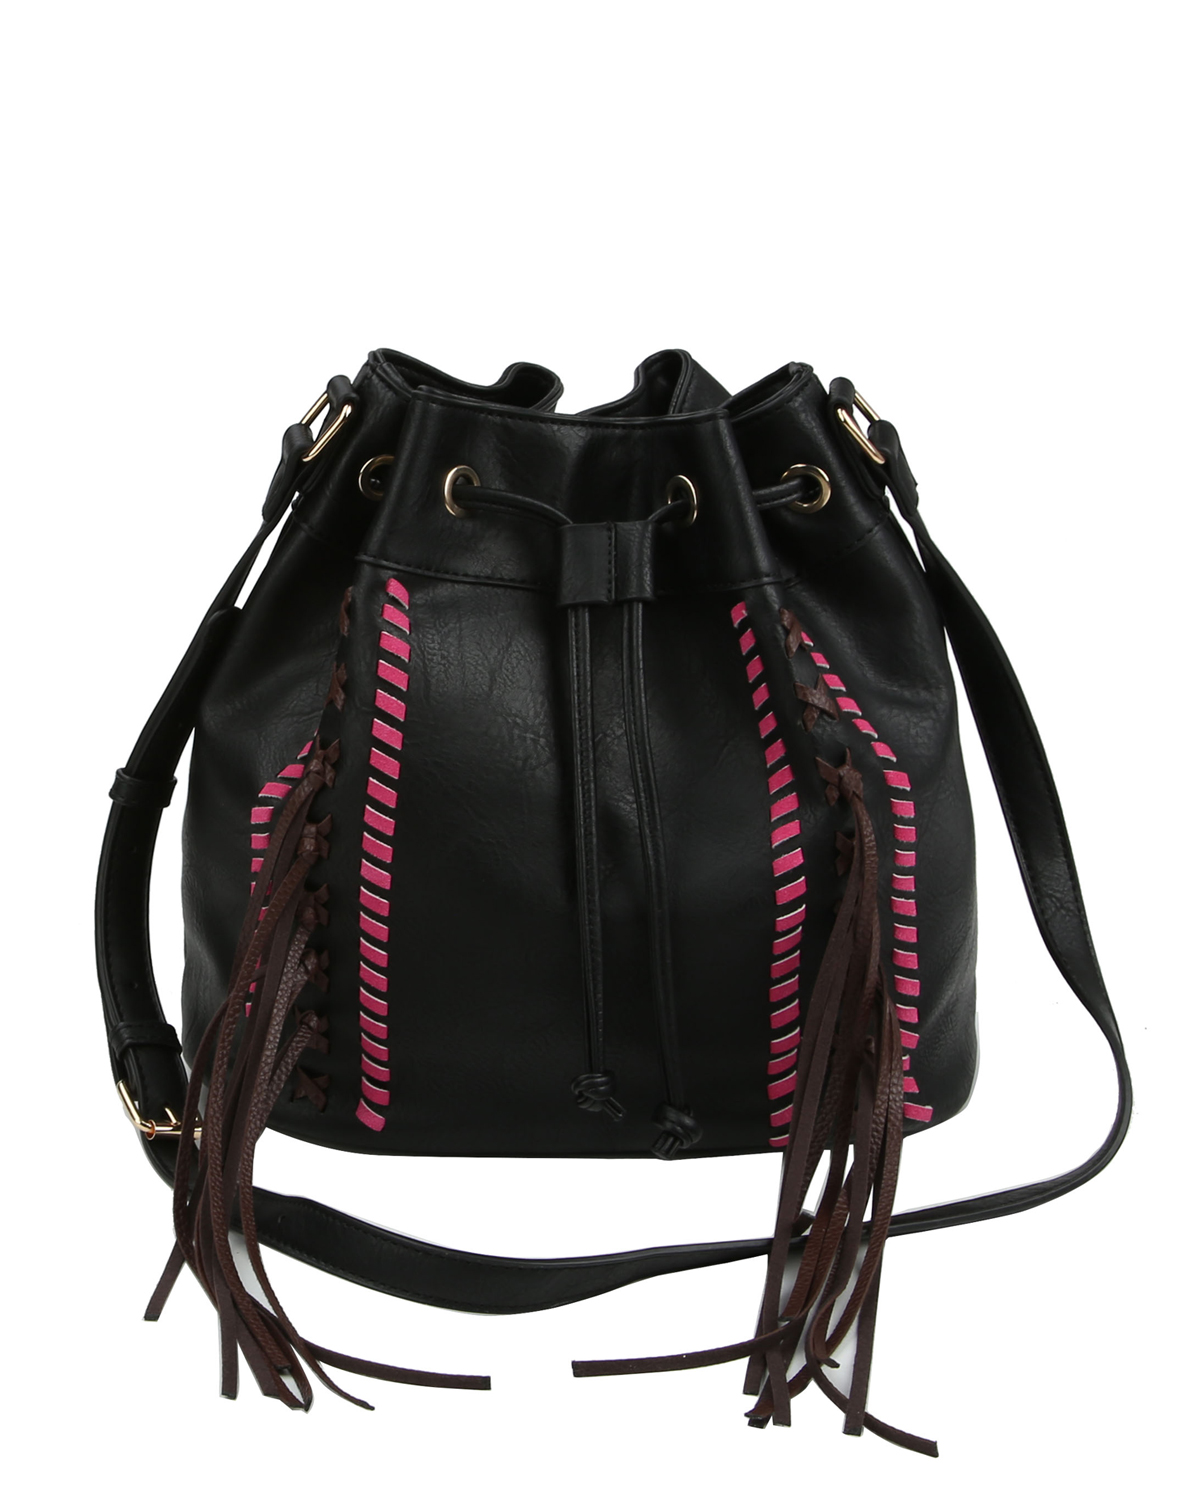 LHU275(BK)-wholesale-messenger-bag-drawstring-tassel-fringe-vegan-leatherette-strap-stitch-tribal-southwestern(0).jpg